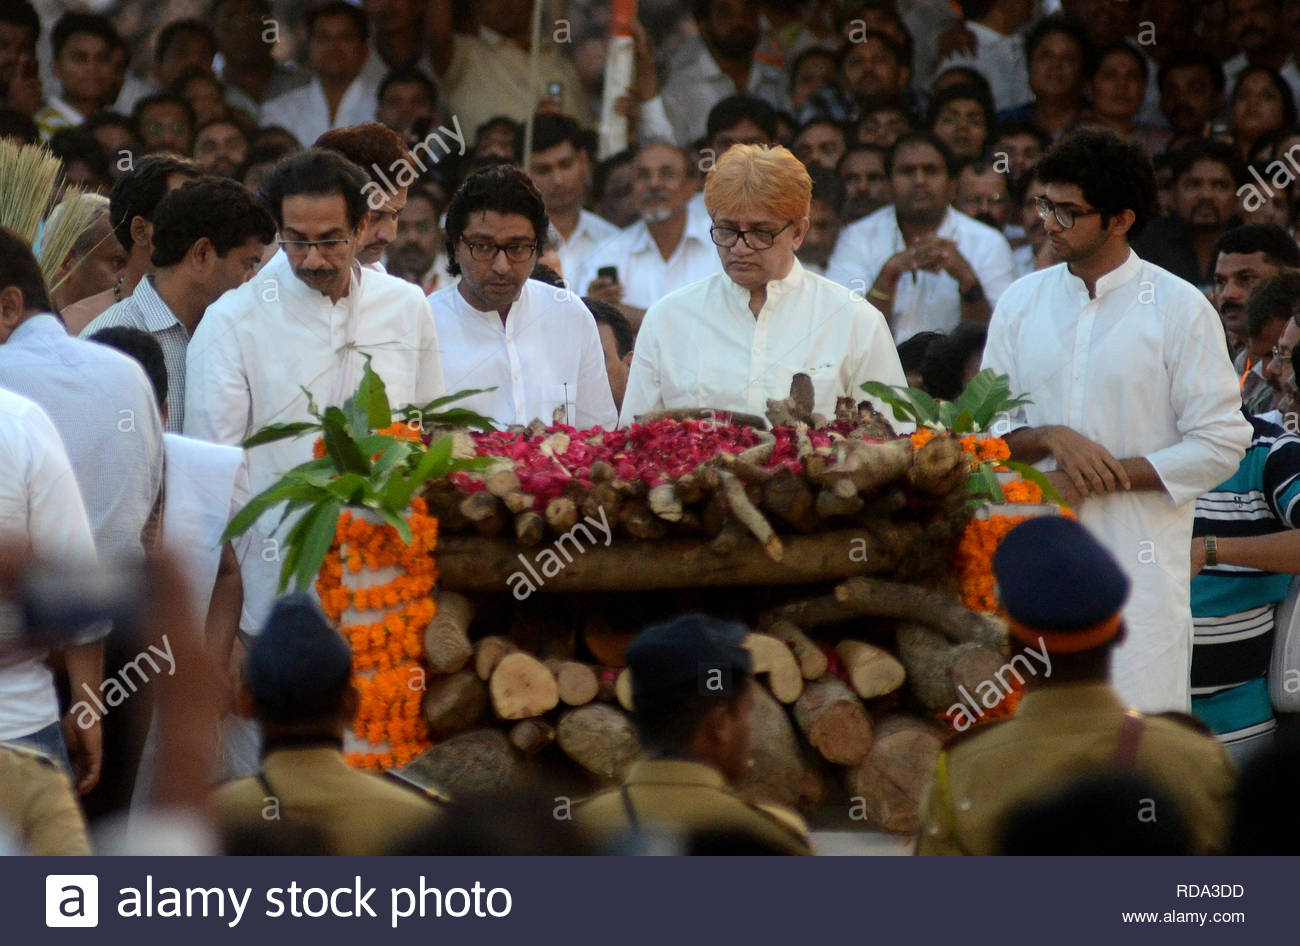 Shiv Sena Executive president Uddhav Thackeray, MNS Chief Bal Thackeray, Jaidev Thackeray perform the final rites to the body of their father and uncle respectively, Shiv Sena supremo Bal Thackeray, in Mumbai, India on November 18, 2012. The 86-year old Thackeray who founded the Shiv Sena in 1966 to fight for the rights of Maharashtrians, died after prolonged illness. He was suffering from lungs and pancreatic ailments and had been put on life support system for the last few days. (Srinivas Akella/SOLARIS IMAGES) (Shripad Naik/SOLARIS IMAGES) - Stock Image